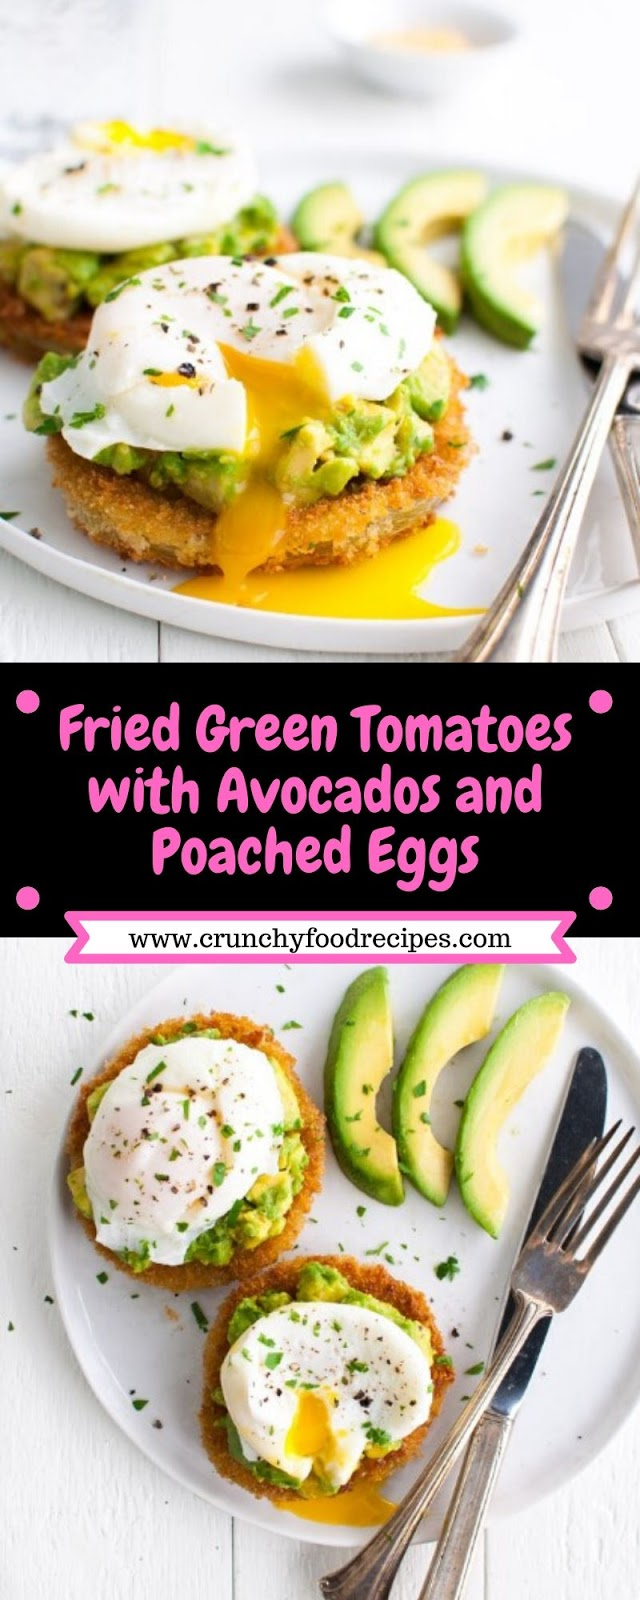 Fried Green Tomatoes with Avocados and Poached Eggs